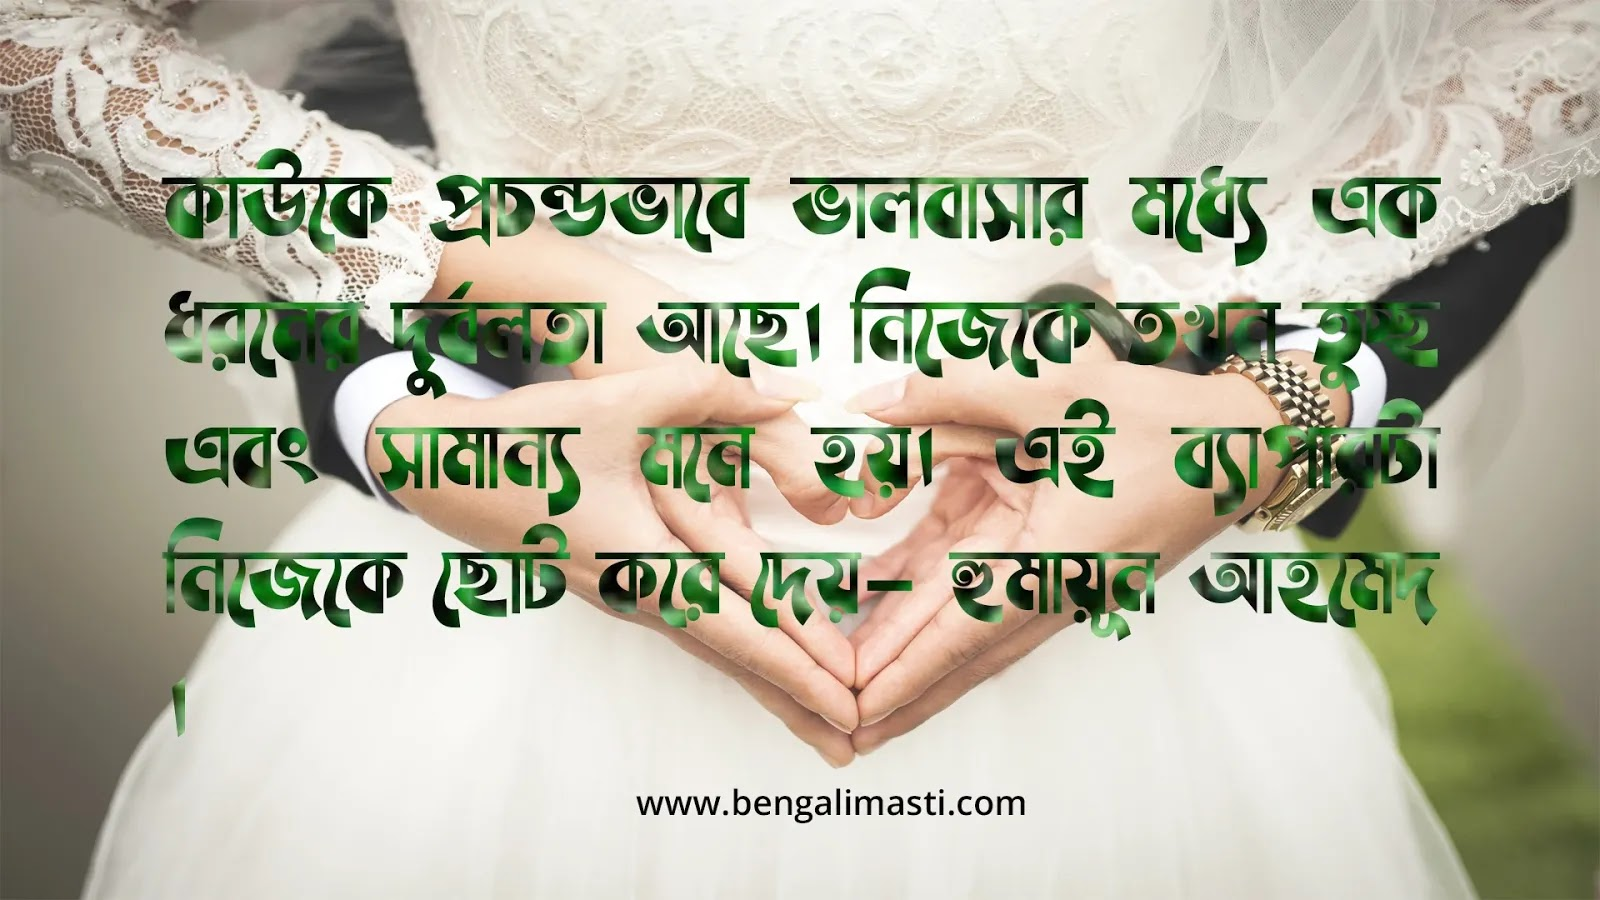 bengali sad quotes lyrics